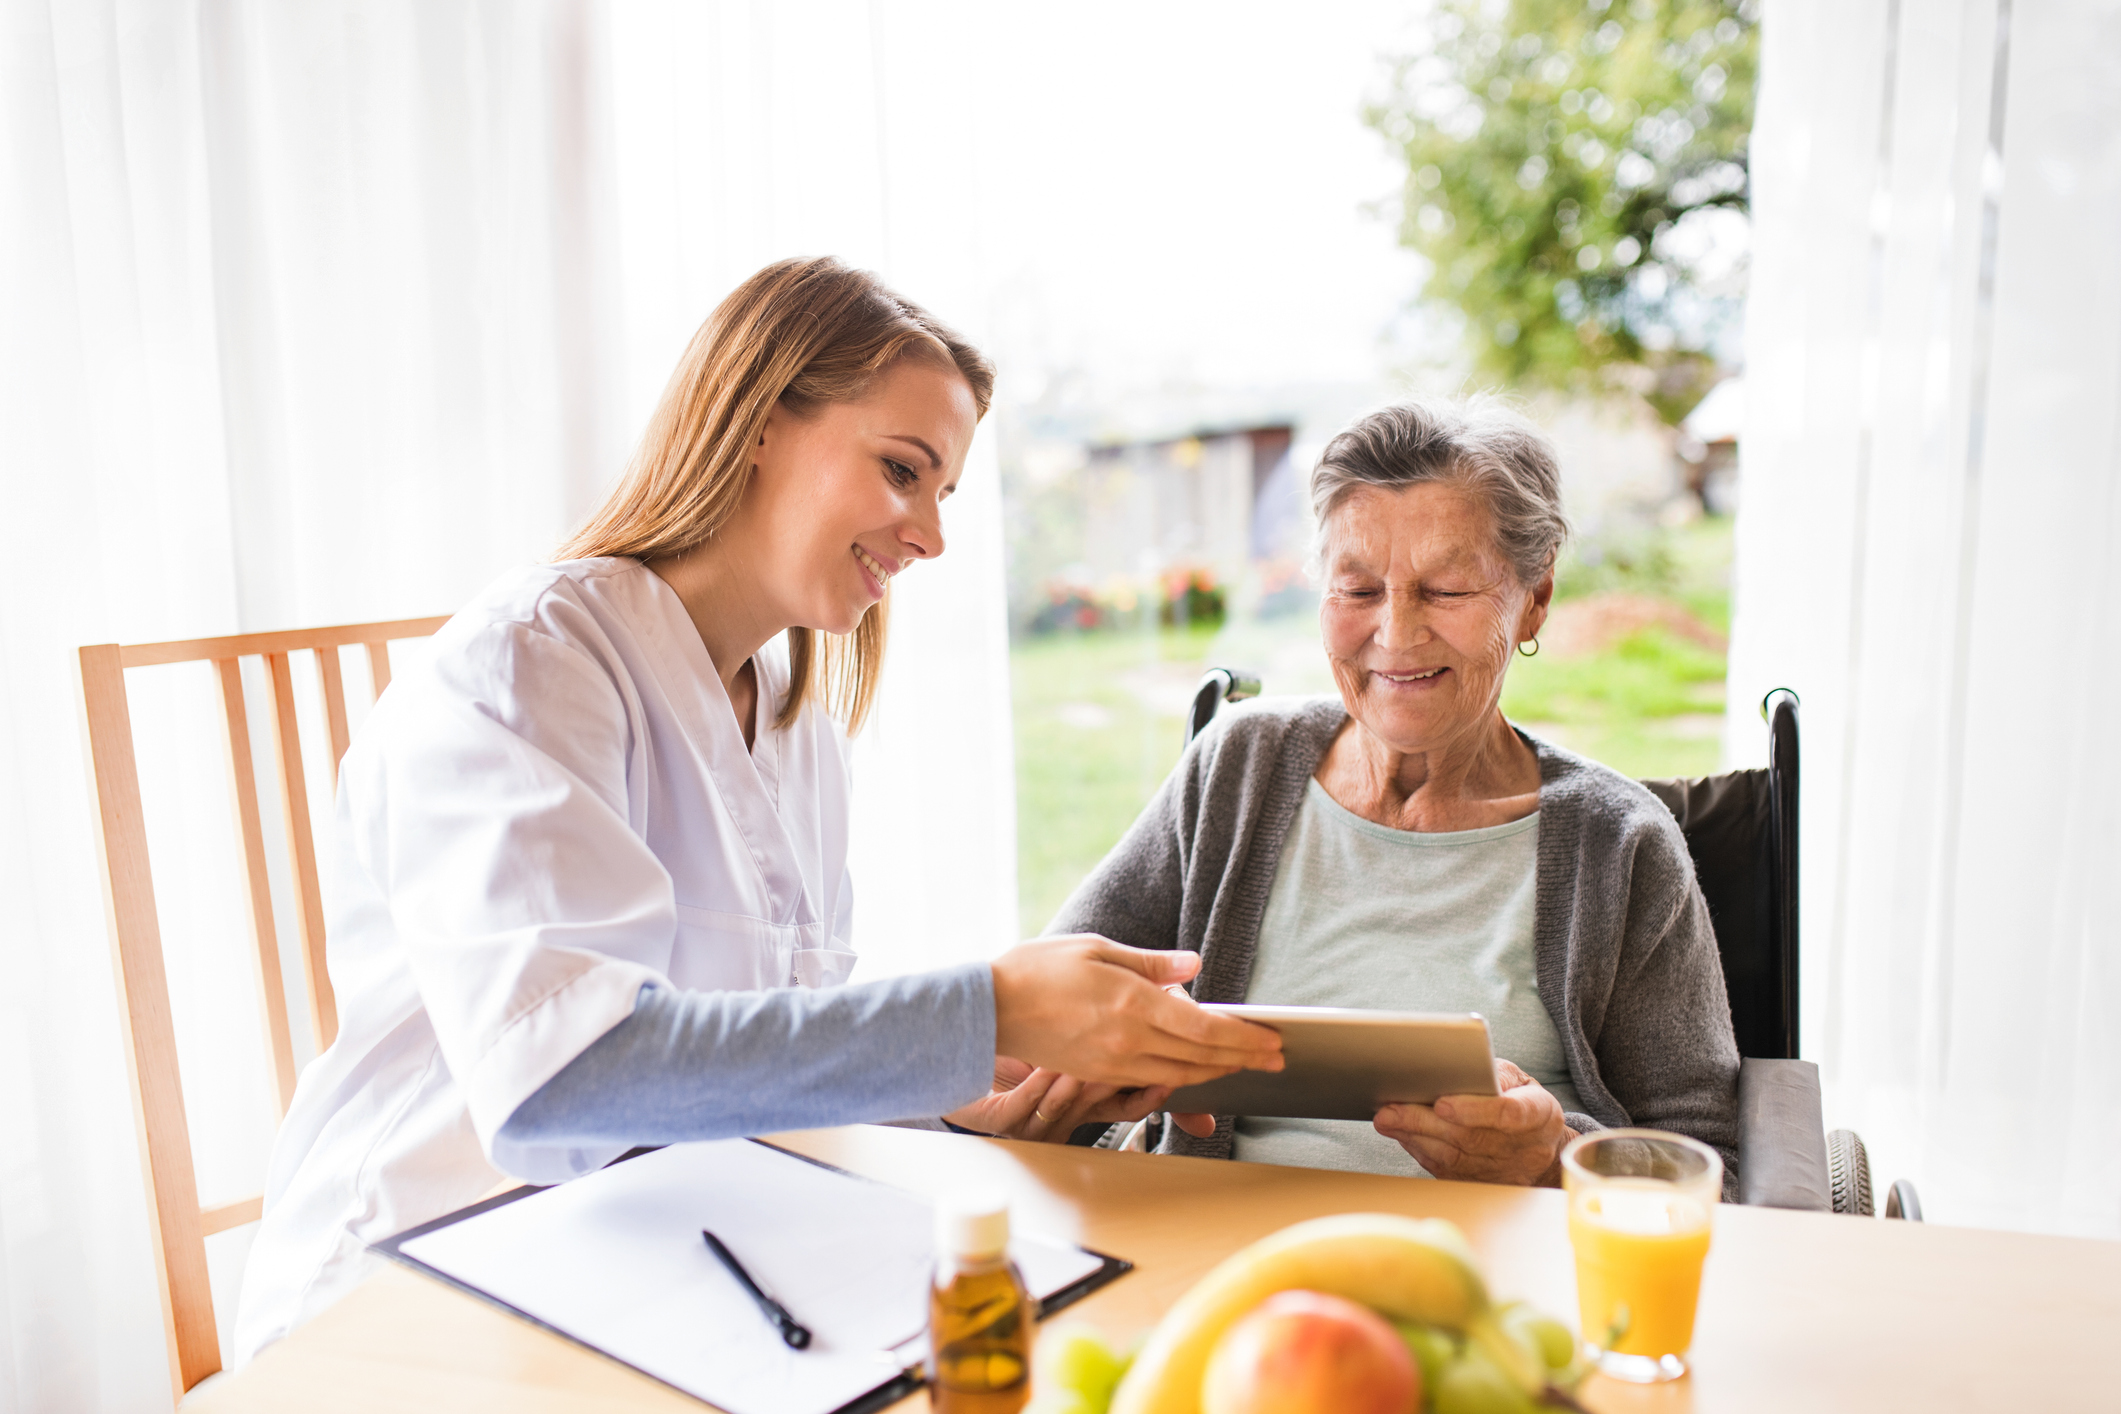 As aged care services evolve, technology carries organisations into the future